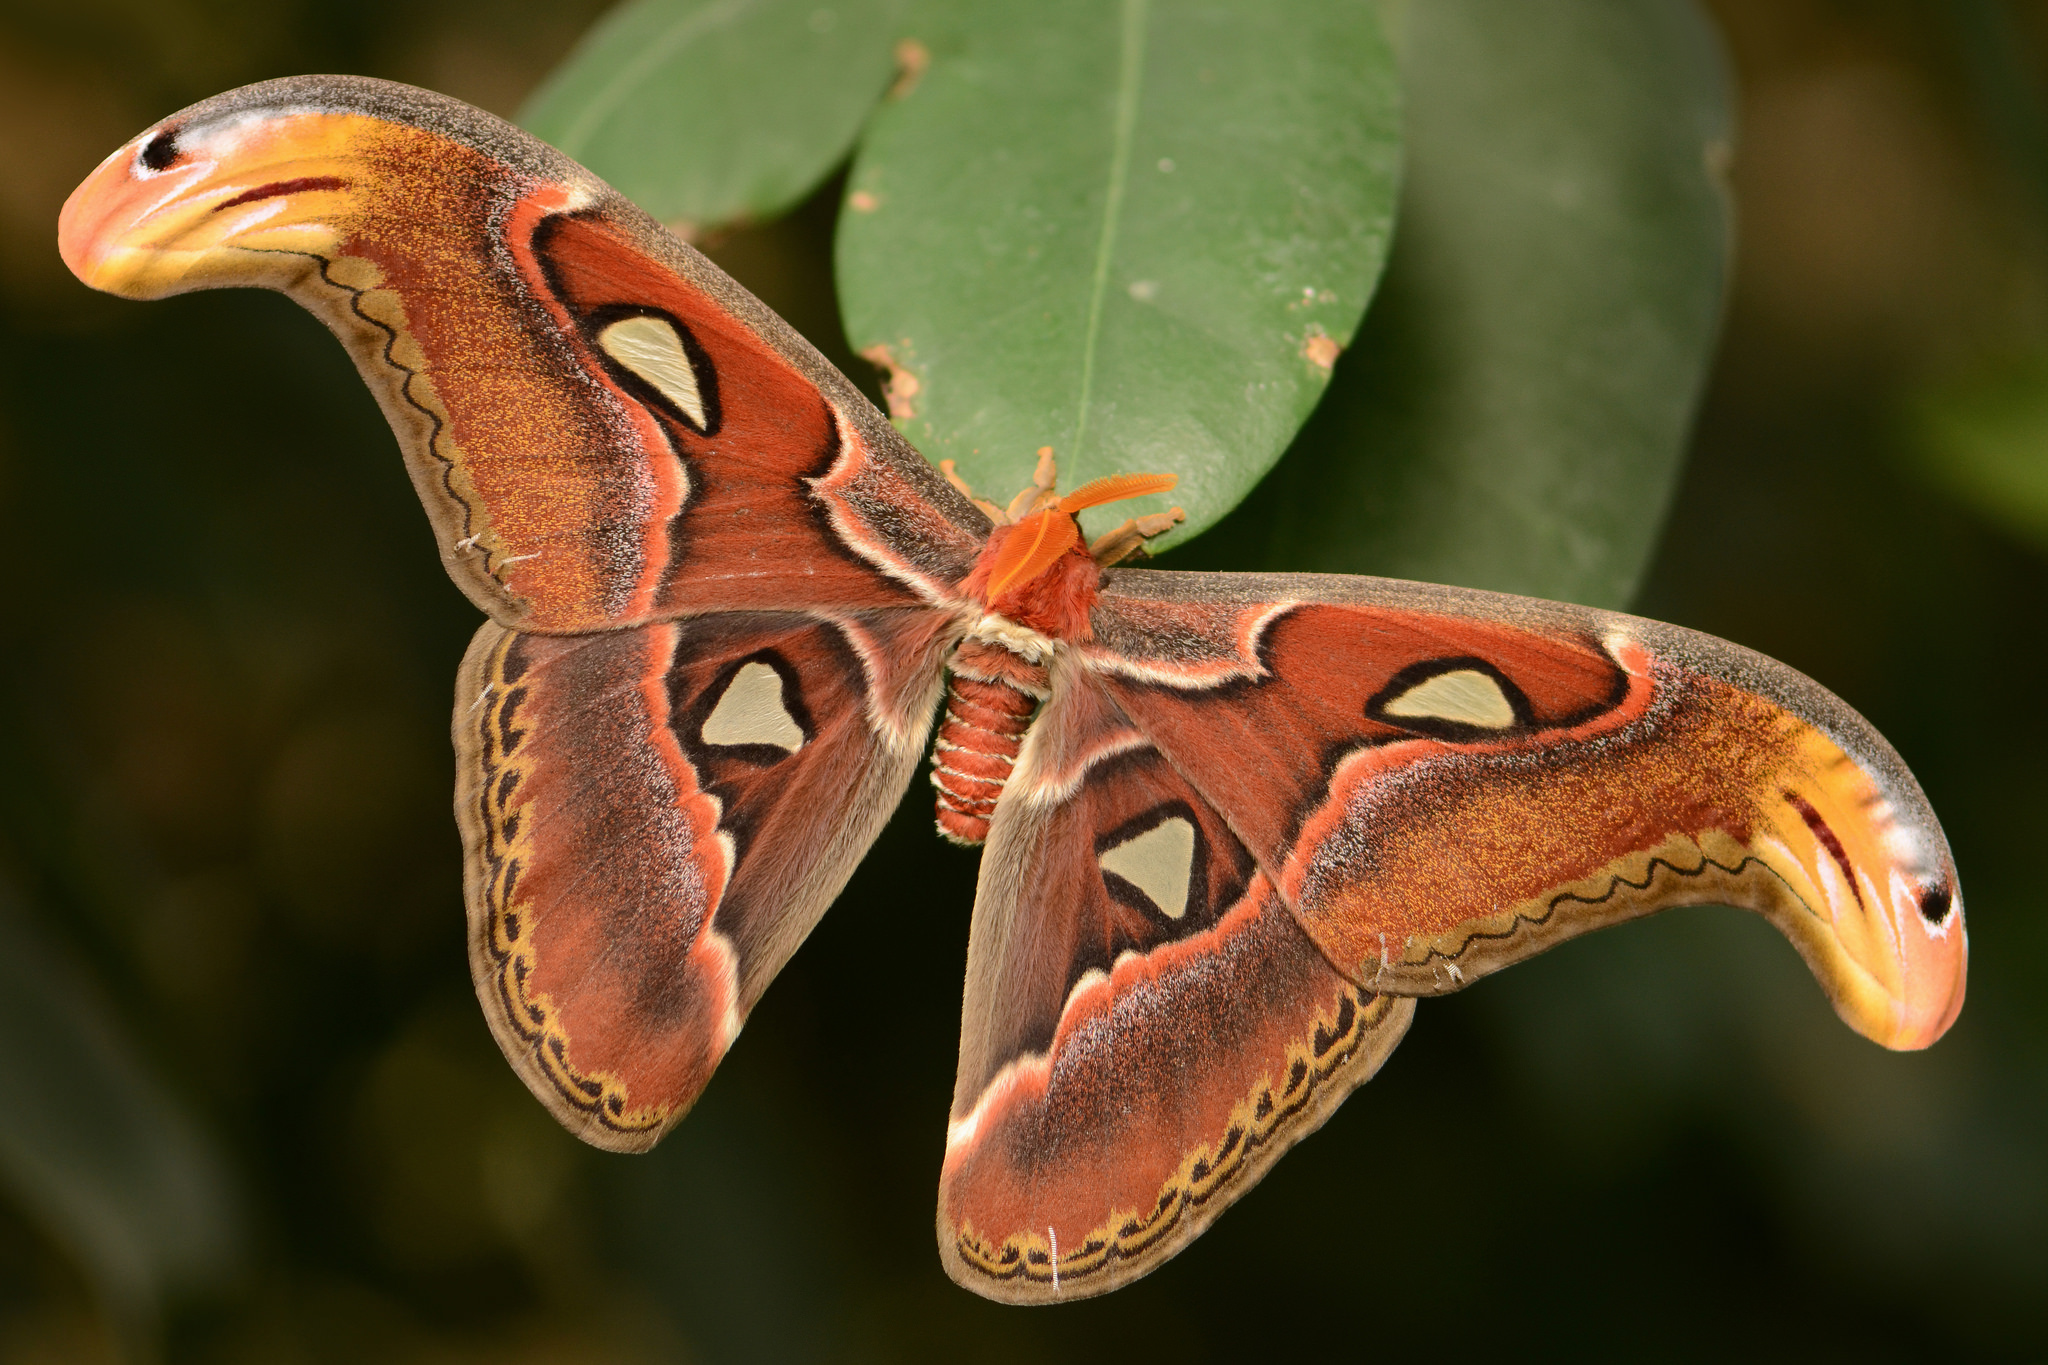 Photo 5 : Attacus atlas femelle (Source : Alias 0591 - Flickr.com)